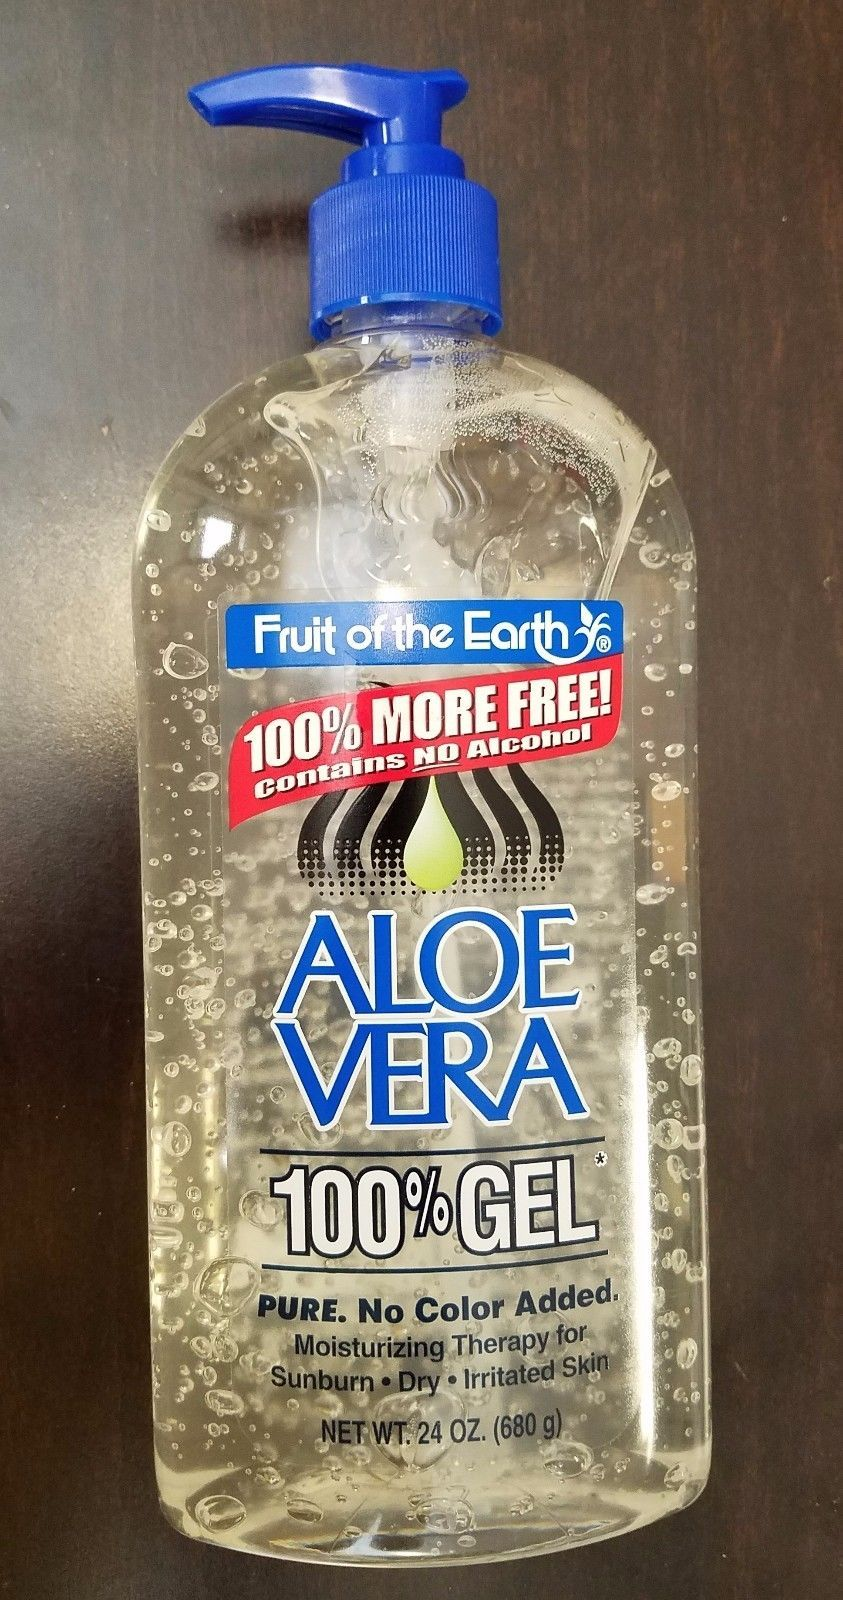 32 99 Fruit Of The Earth Aloe Vera 100 Gel 24 12 6 4 2 Oz Fruit Earth Aloe Vera Healthy Acne Makeuparti Aloe Vera Pure Aloe Vera Gel Aloe